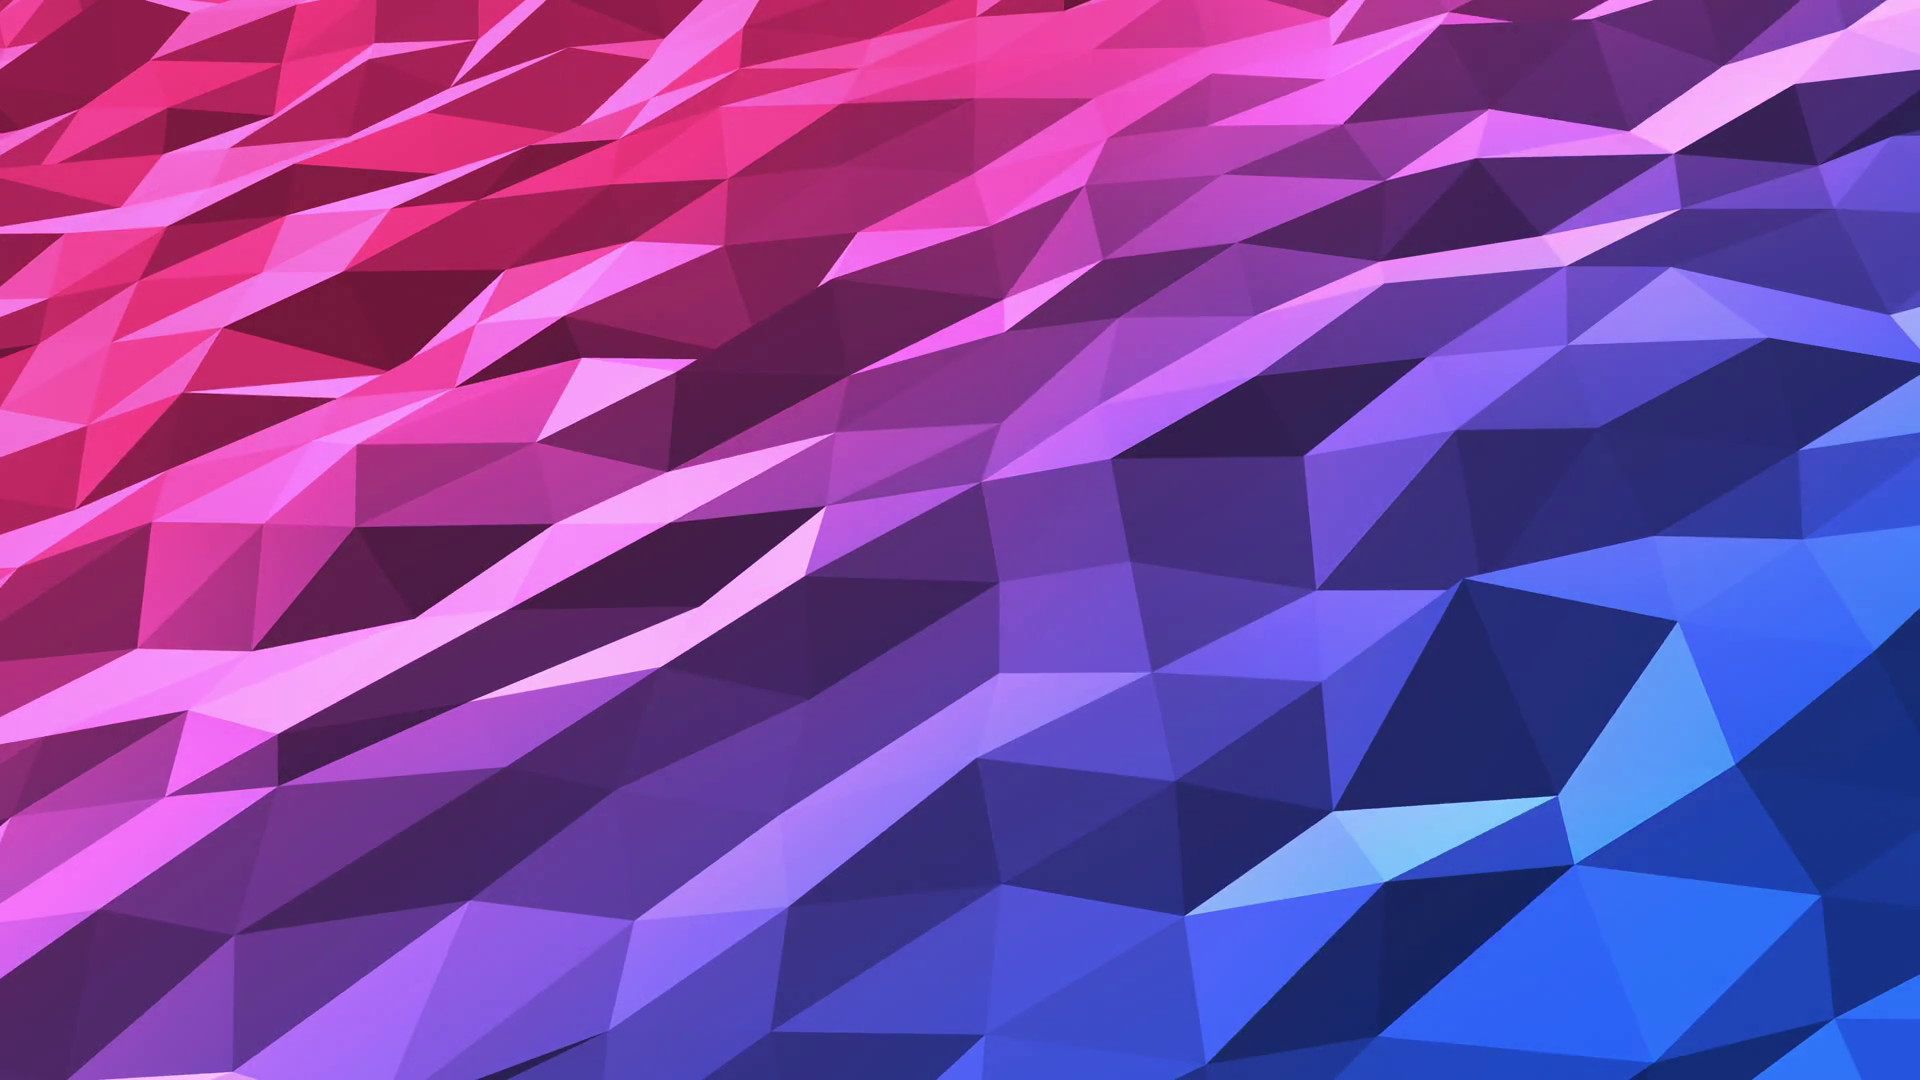 Pink Purple And Blue Wallpaper Posted By John Anderson